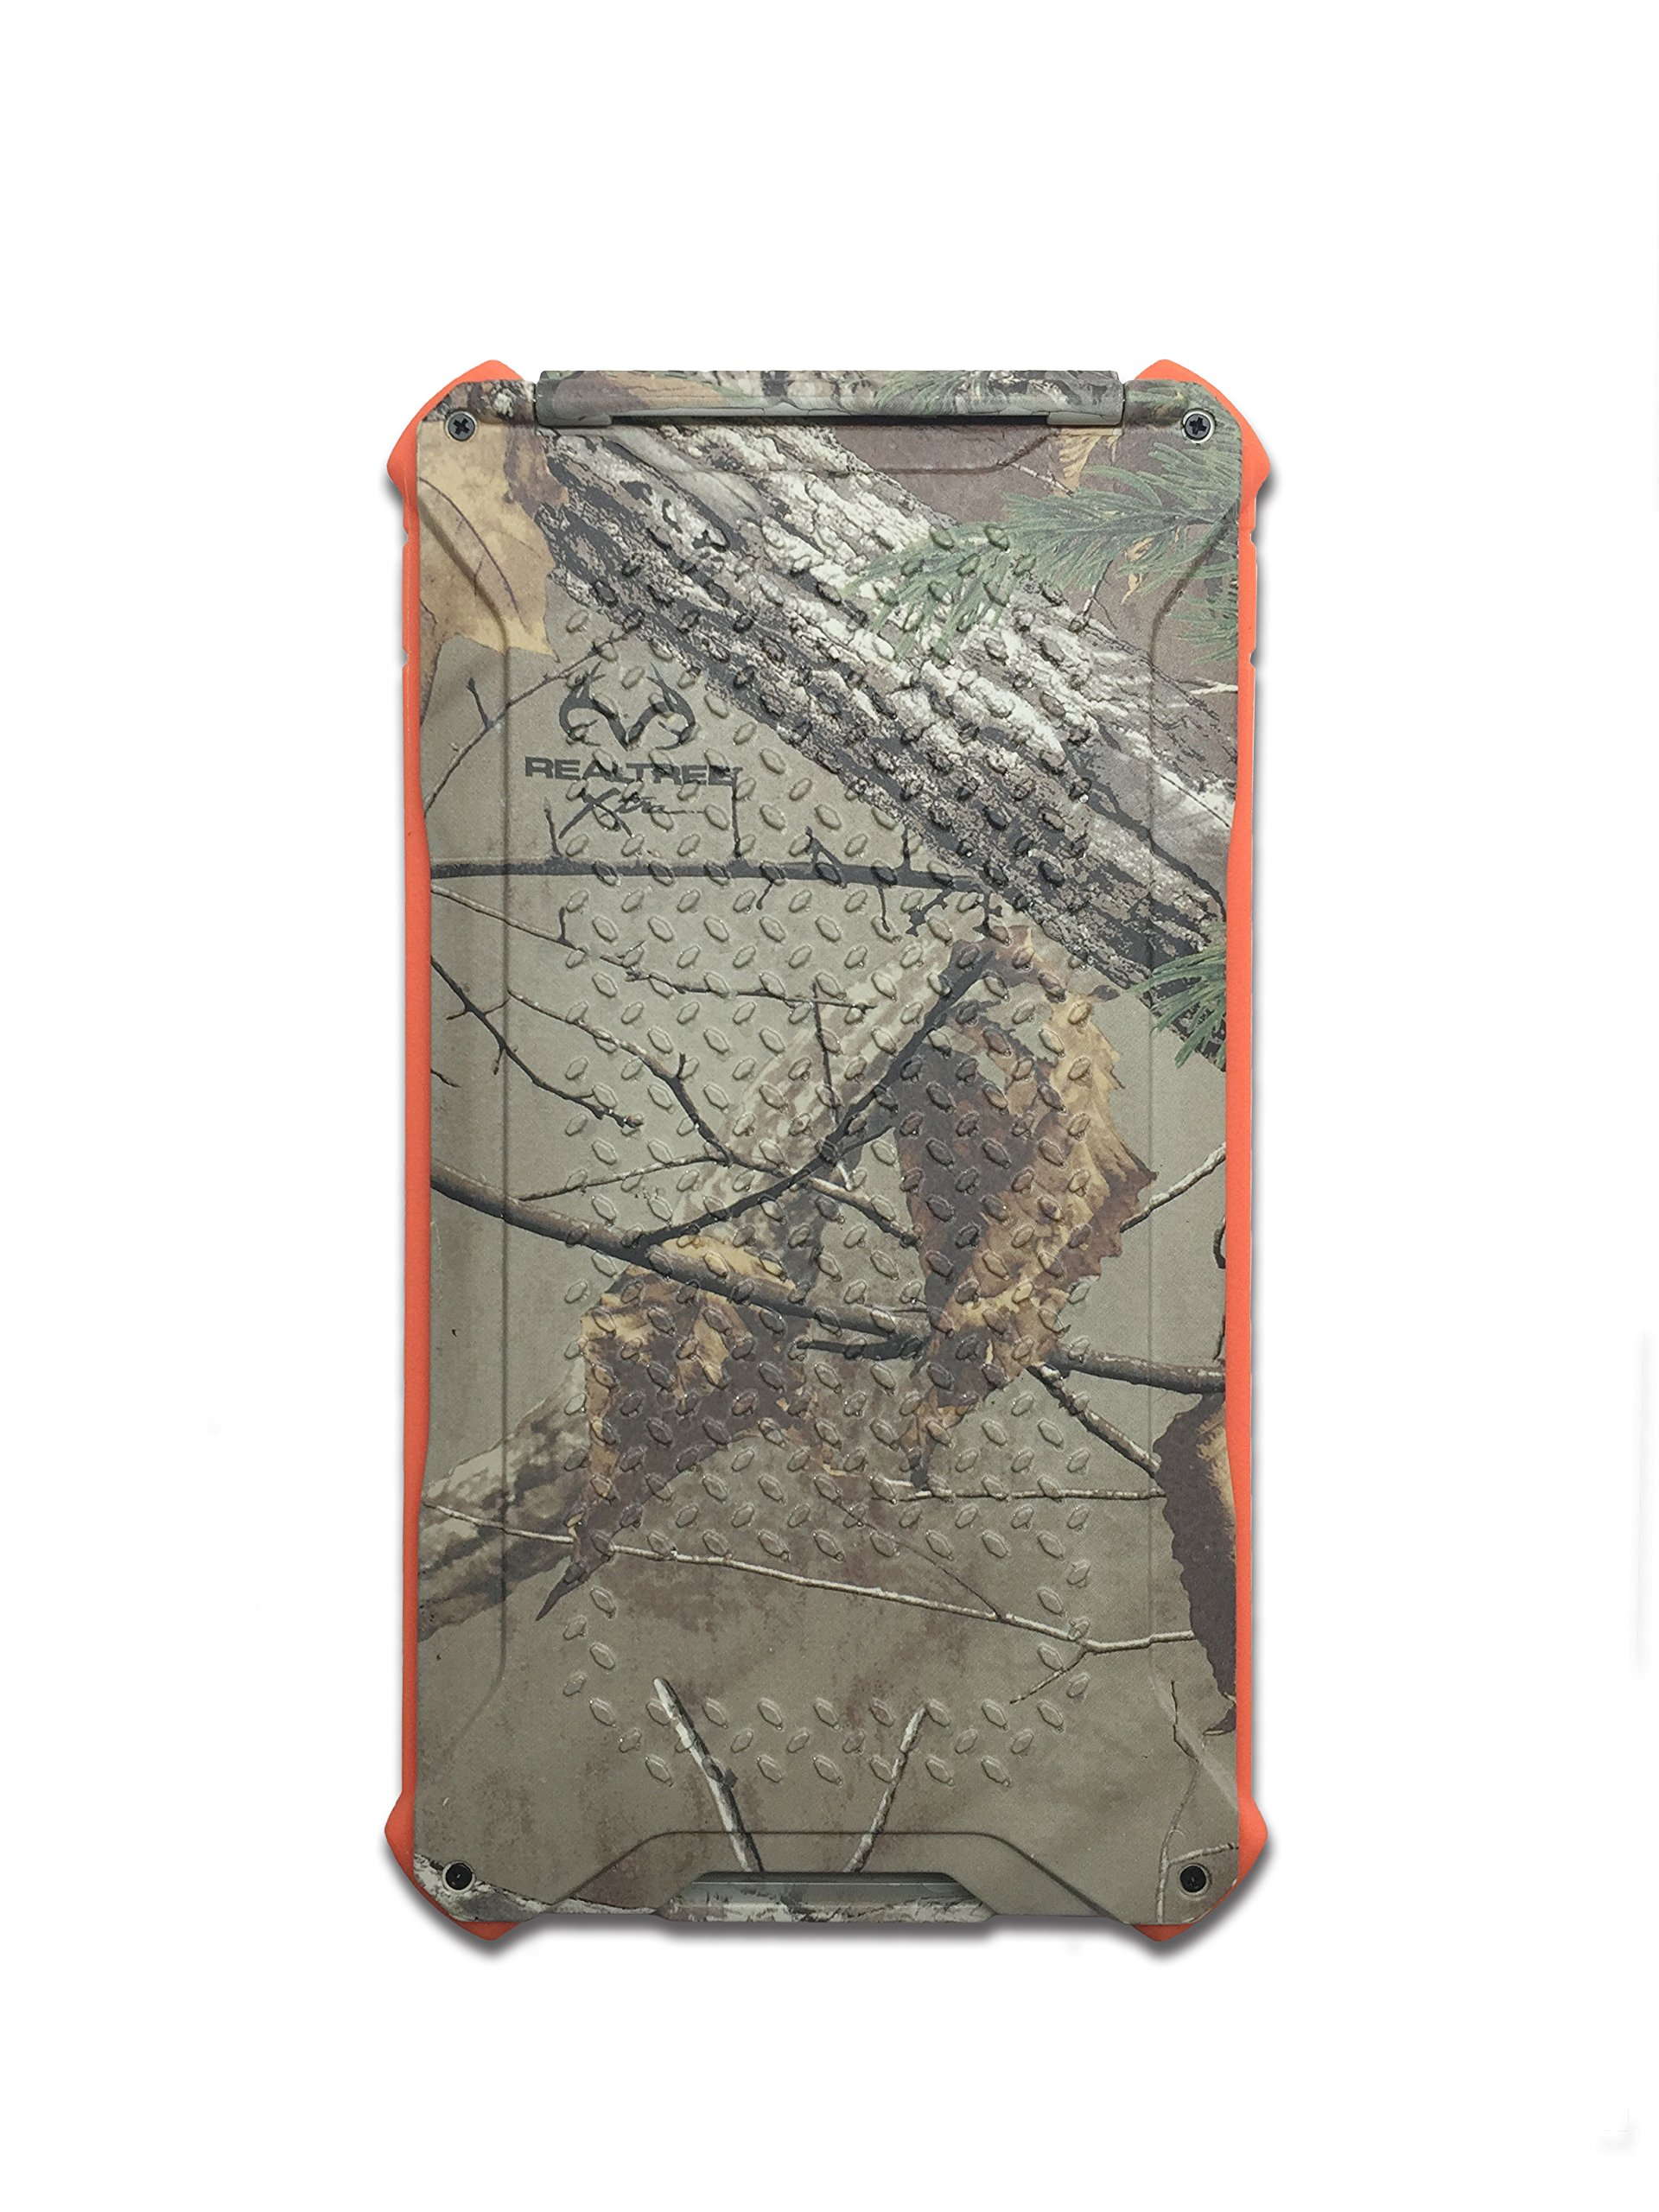 Dark Energy Poseidon IP68 Waterproof, Shockproof, Dustproof, 10,000mah, 2 USB Port, 3.4 Amp Portable Charger and Light PLUS Paracord Charging Cable, Realtree by Dark Energy (Image #2)